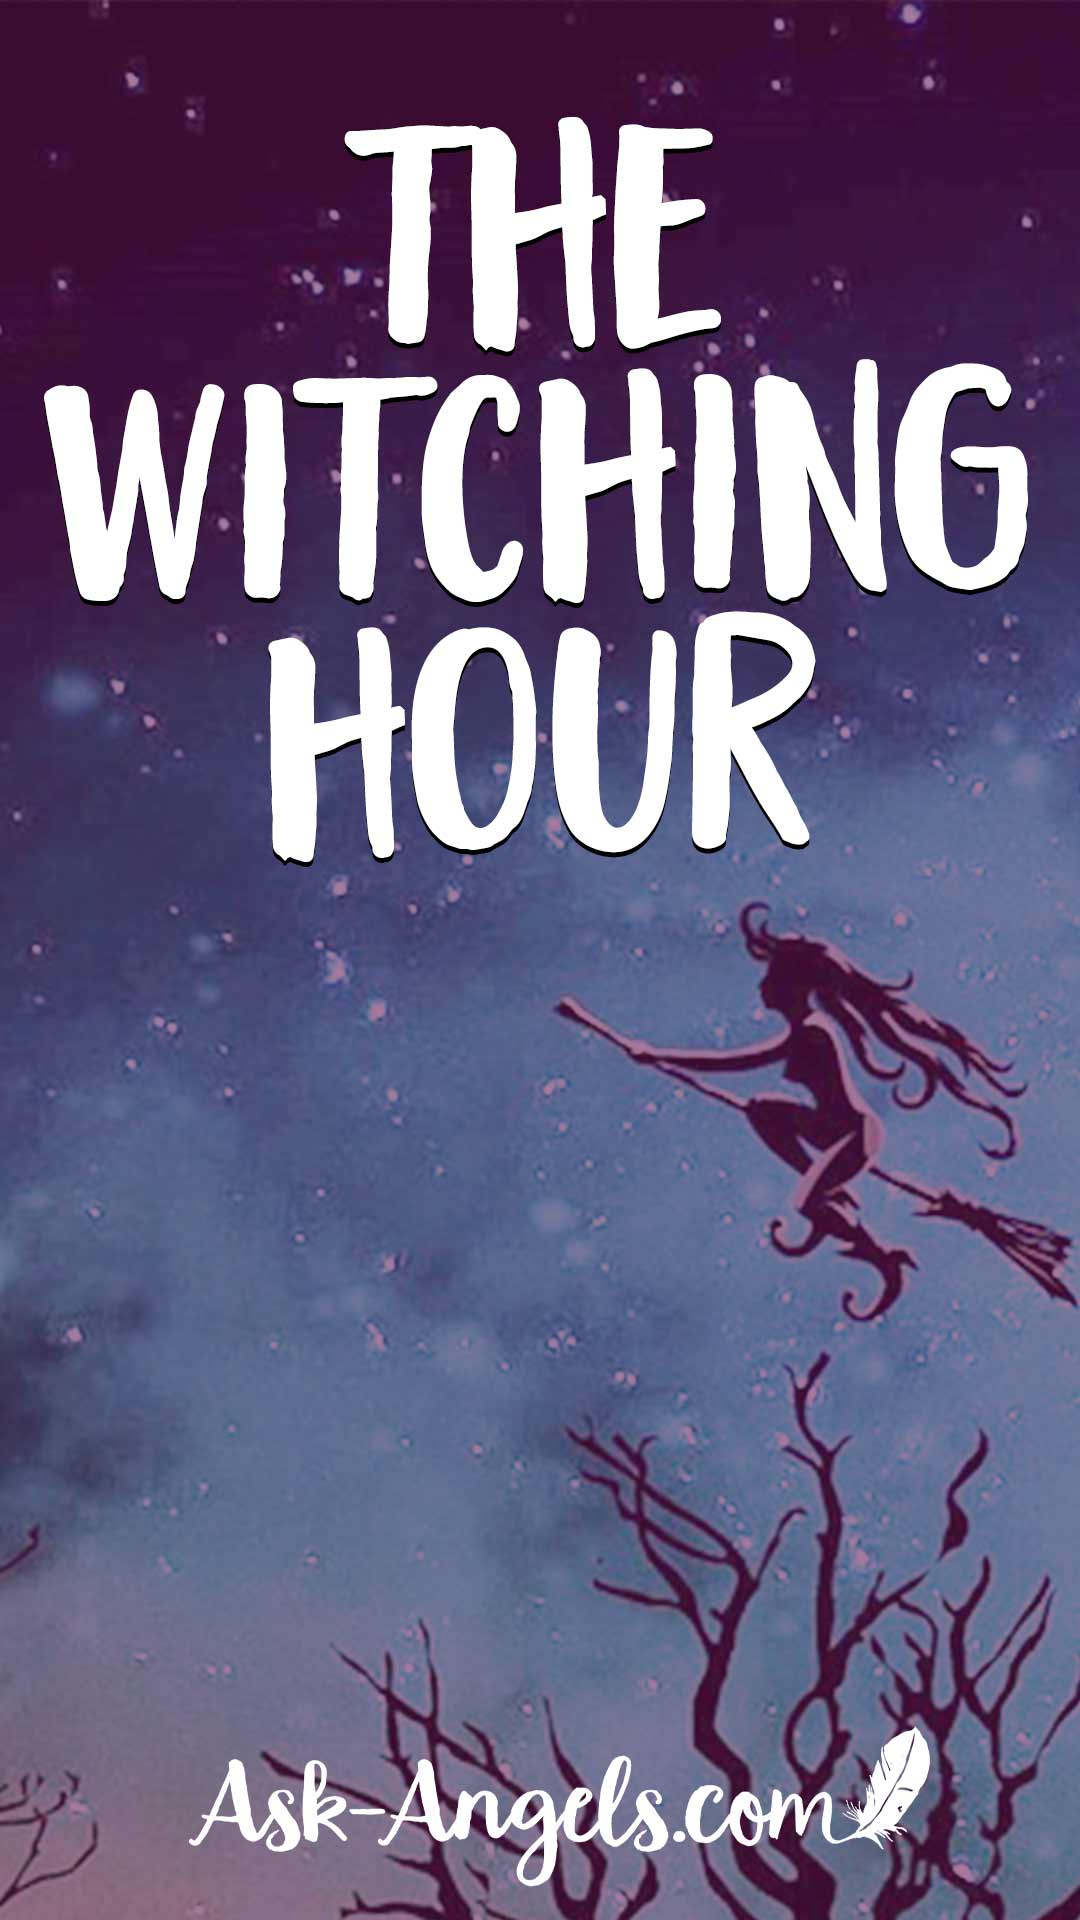 The Witching Hour ... Between 2AM and 4 AM. What does it mean?